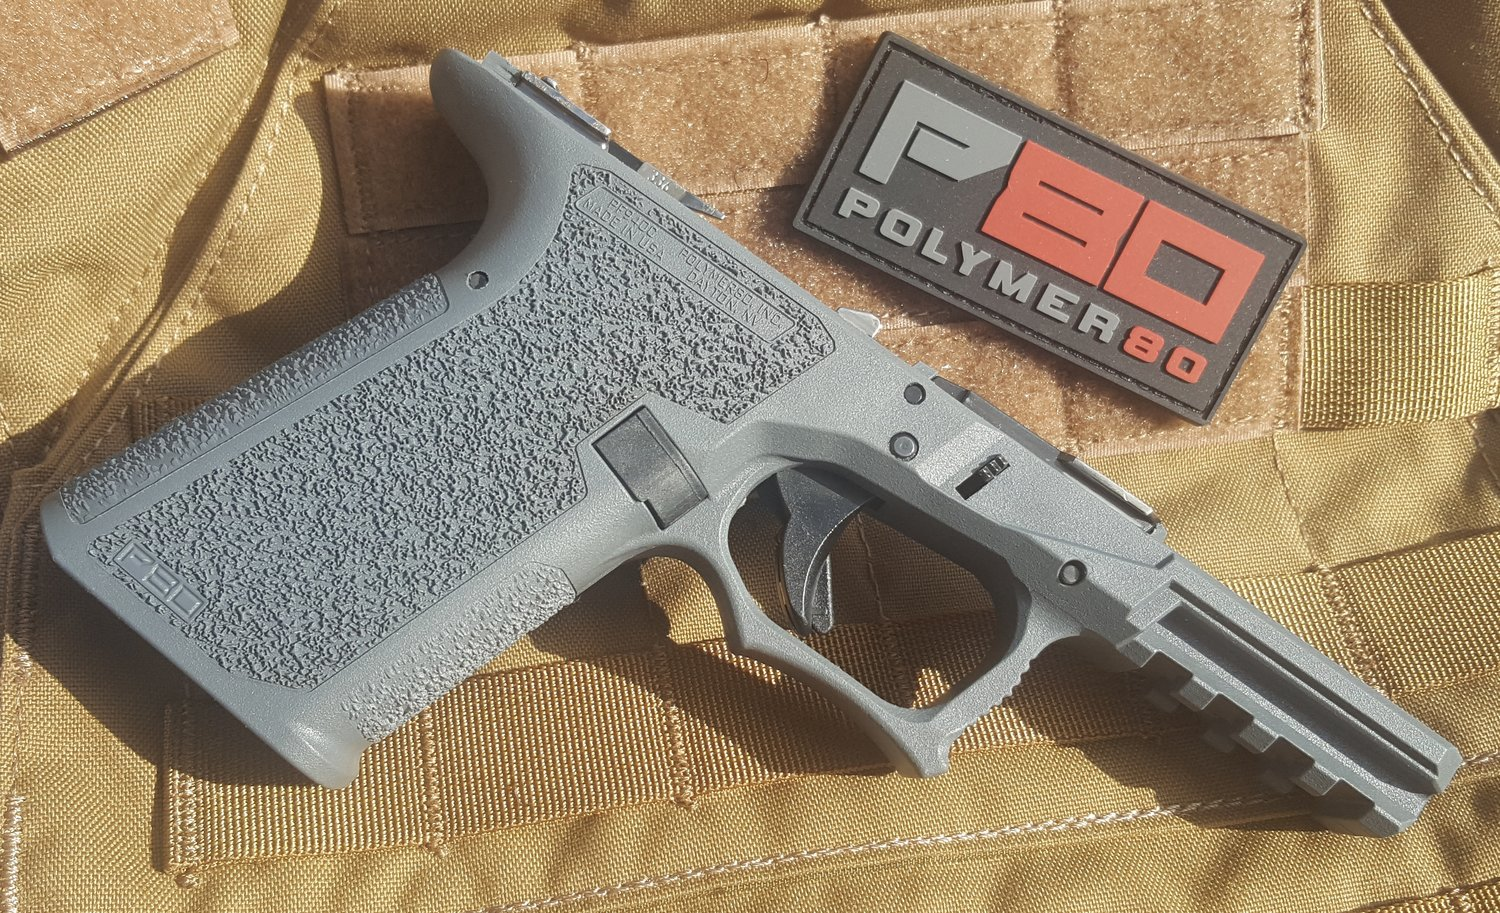 Polymer 80 Pf940c Firearms Insider Community Glock Schematic Diagram Together With 22 Parts The Frame Has Some Improvements Over A Stock 19 Besides Texture I Previously Noted It Really Nice Undercut Trigger Guard So You Can